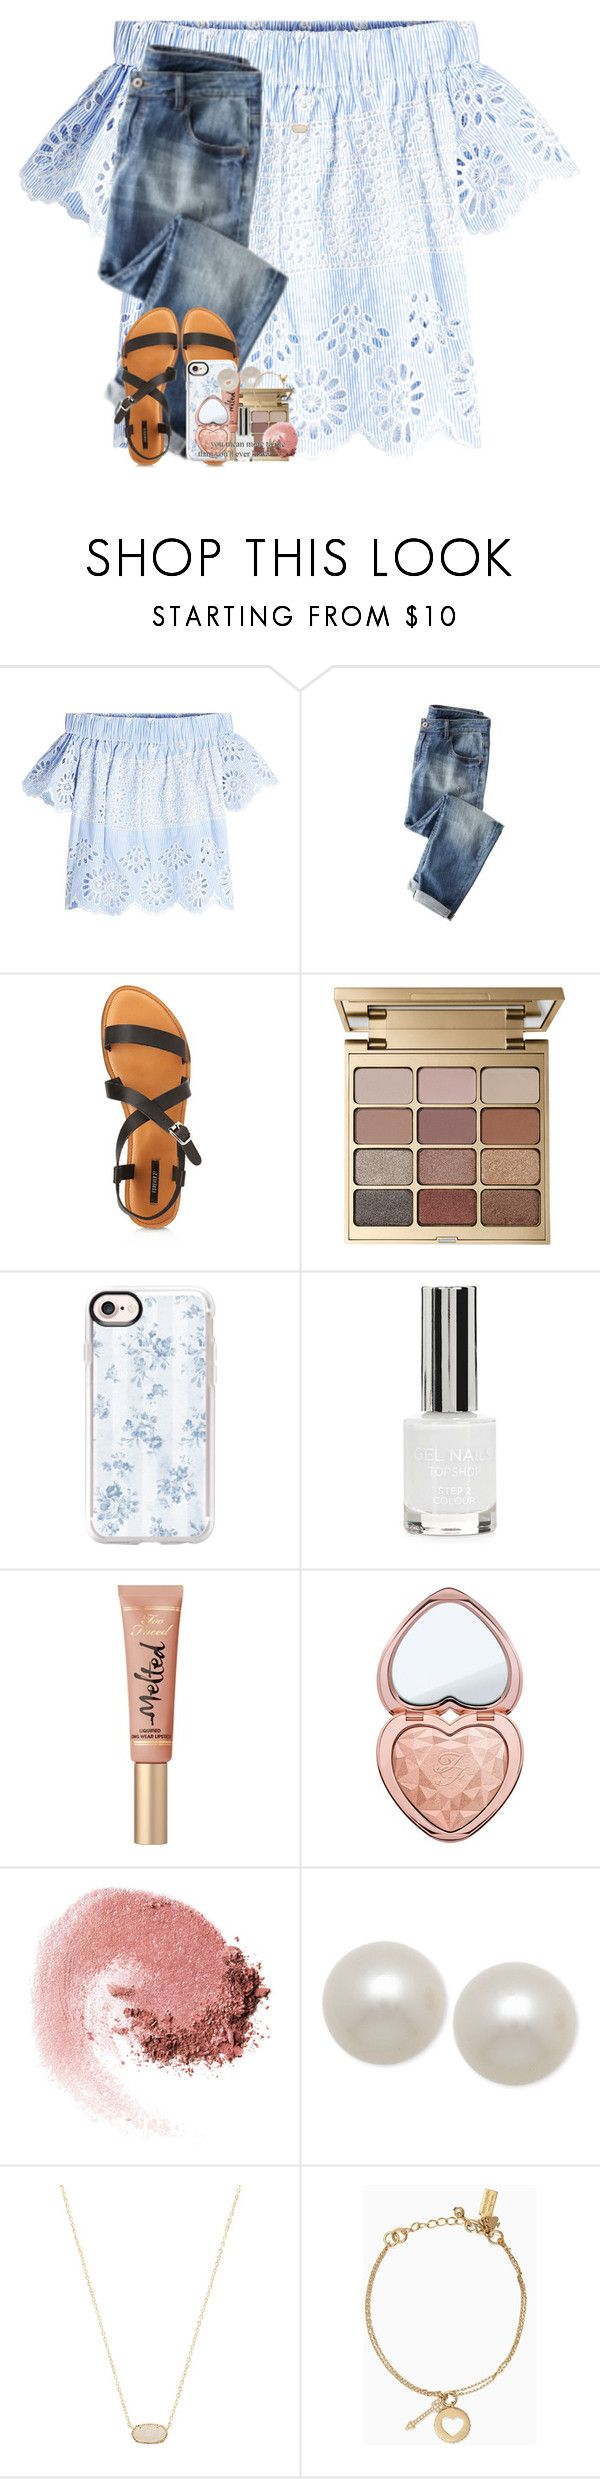 """if the hurt comes, so will the happiness"" by emilyandella ❤ liked on Polyvore featuring Sea, New York, Forever 21, Stila, Casetify, Topshop, Too Faced Cosmetics, NARS Cosmetics, Honora, Kendra Scott and Kate Spade"